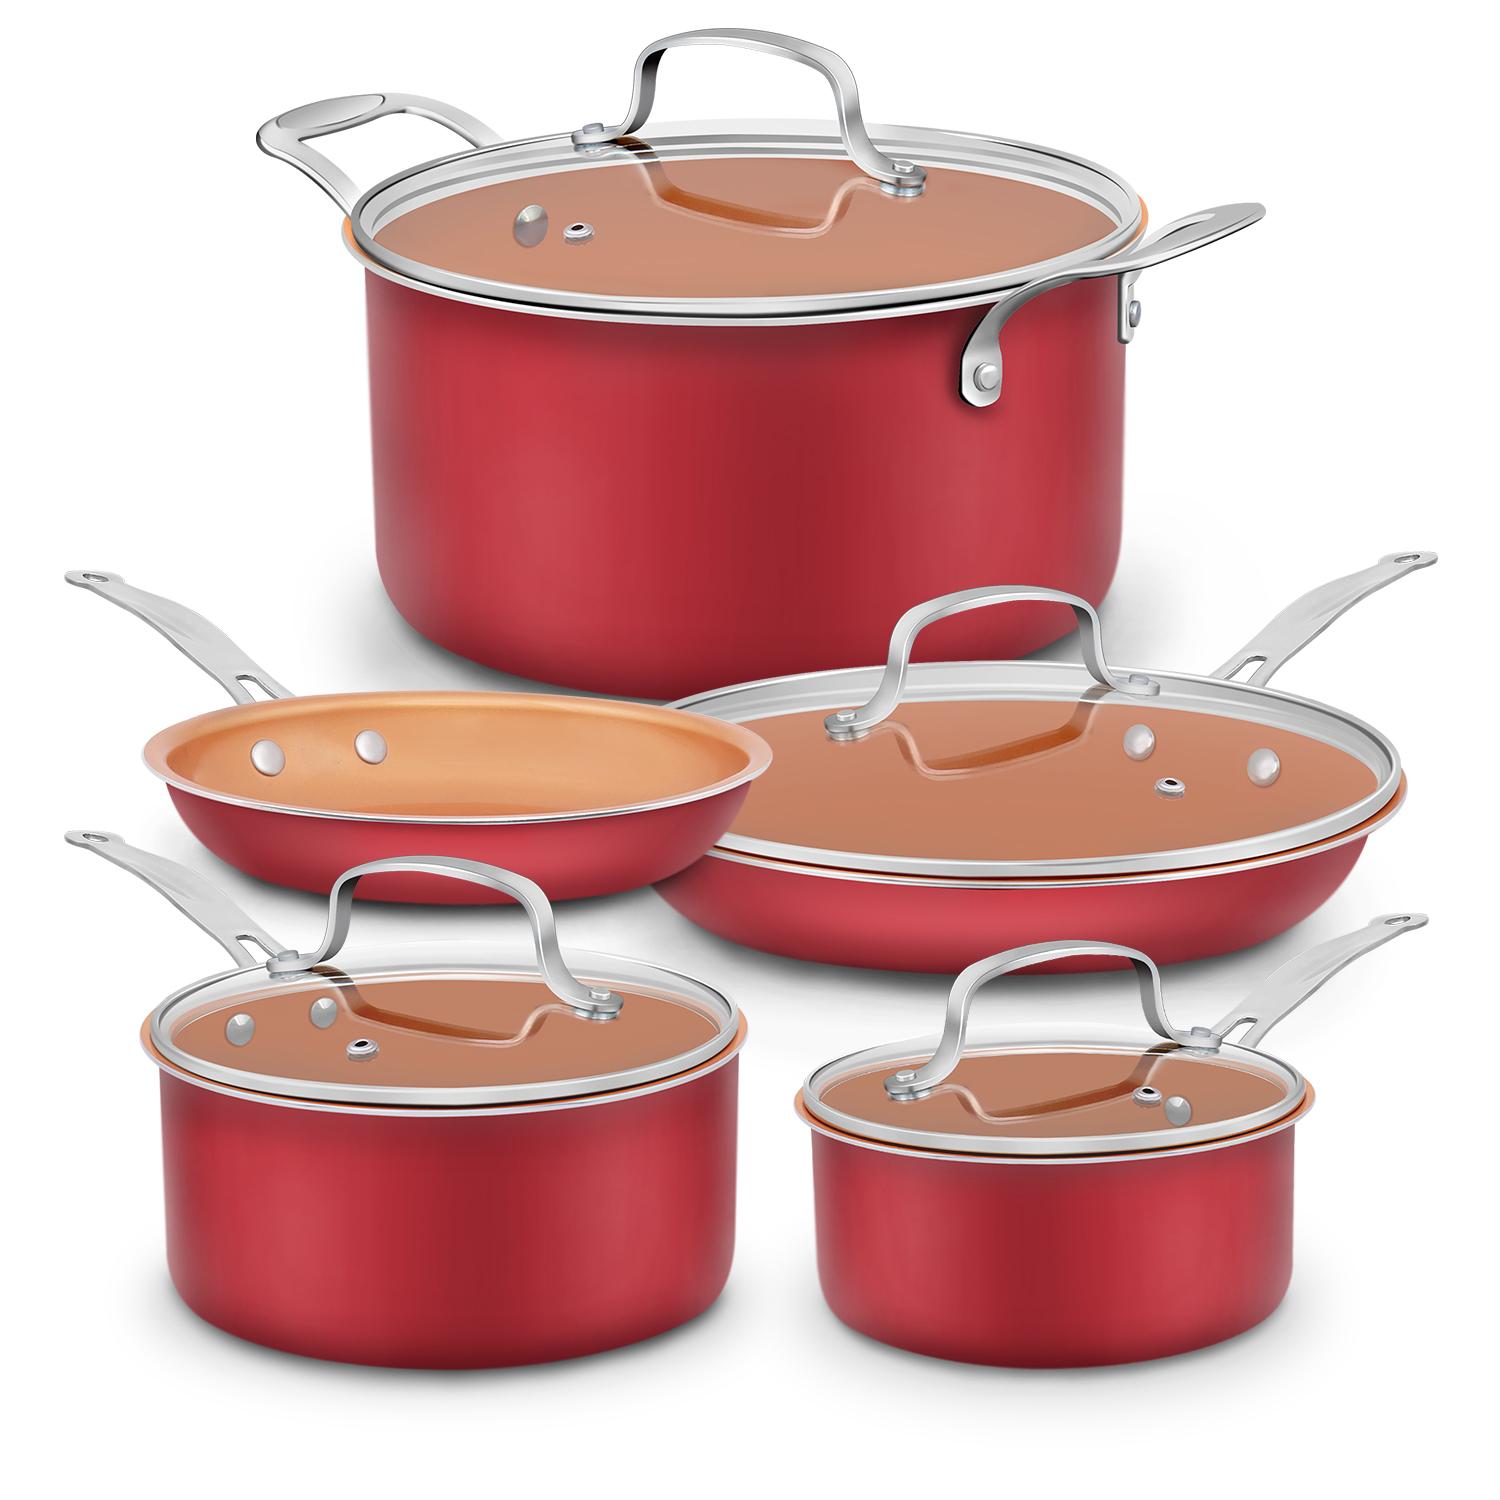 New Year, winter deals! Aluminum-Infused Copper Ceramic Non-Stick 9 Pieces Cookware Set, Only $99.99